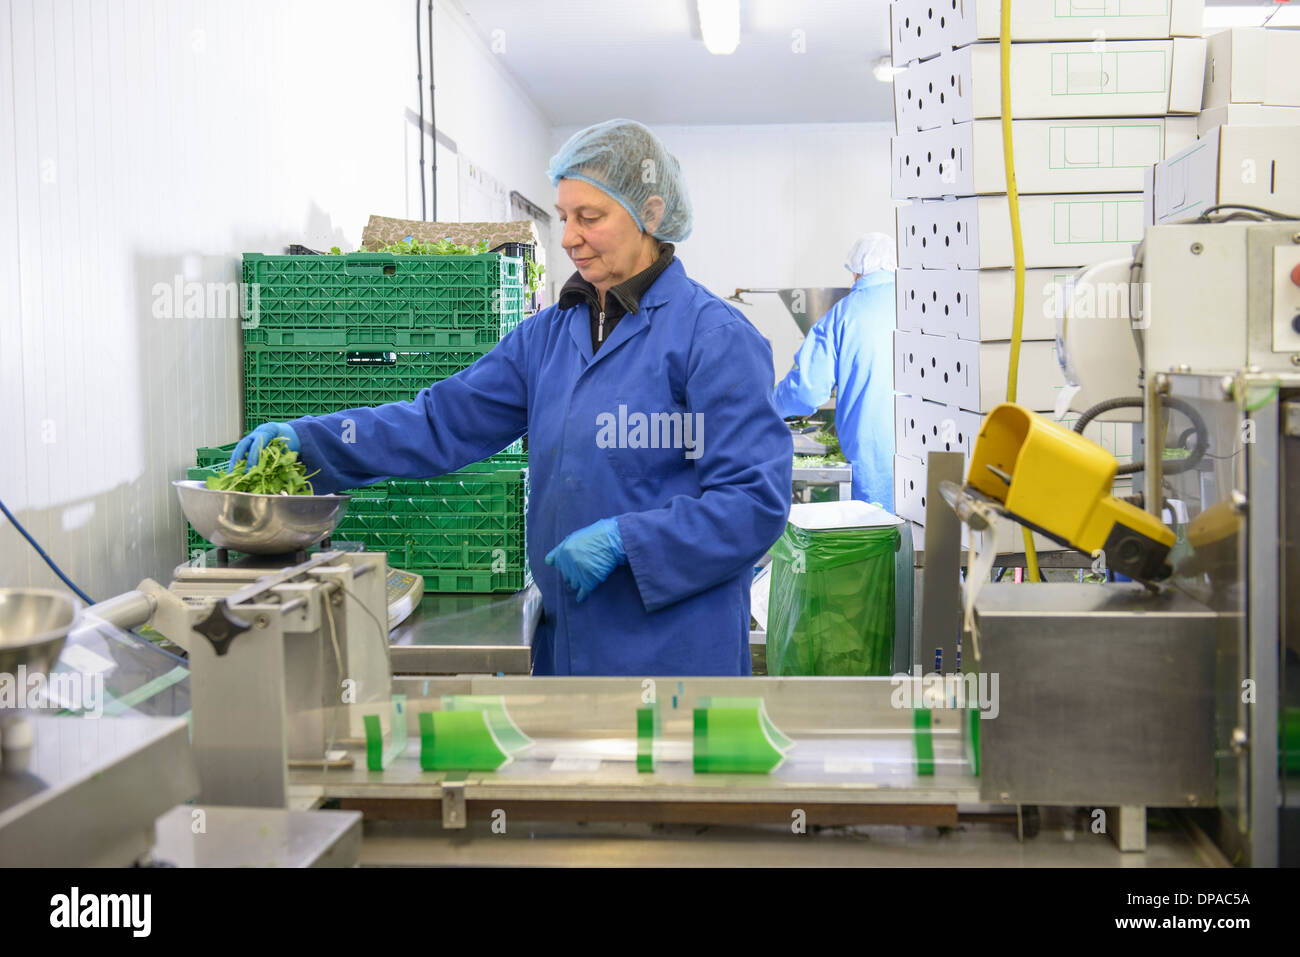 Workers weighing salad leaves - Stock Image